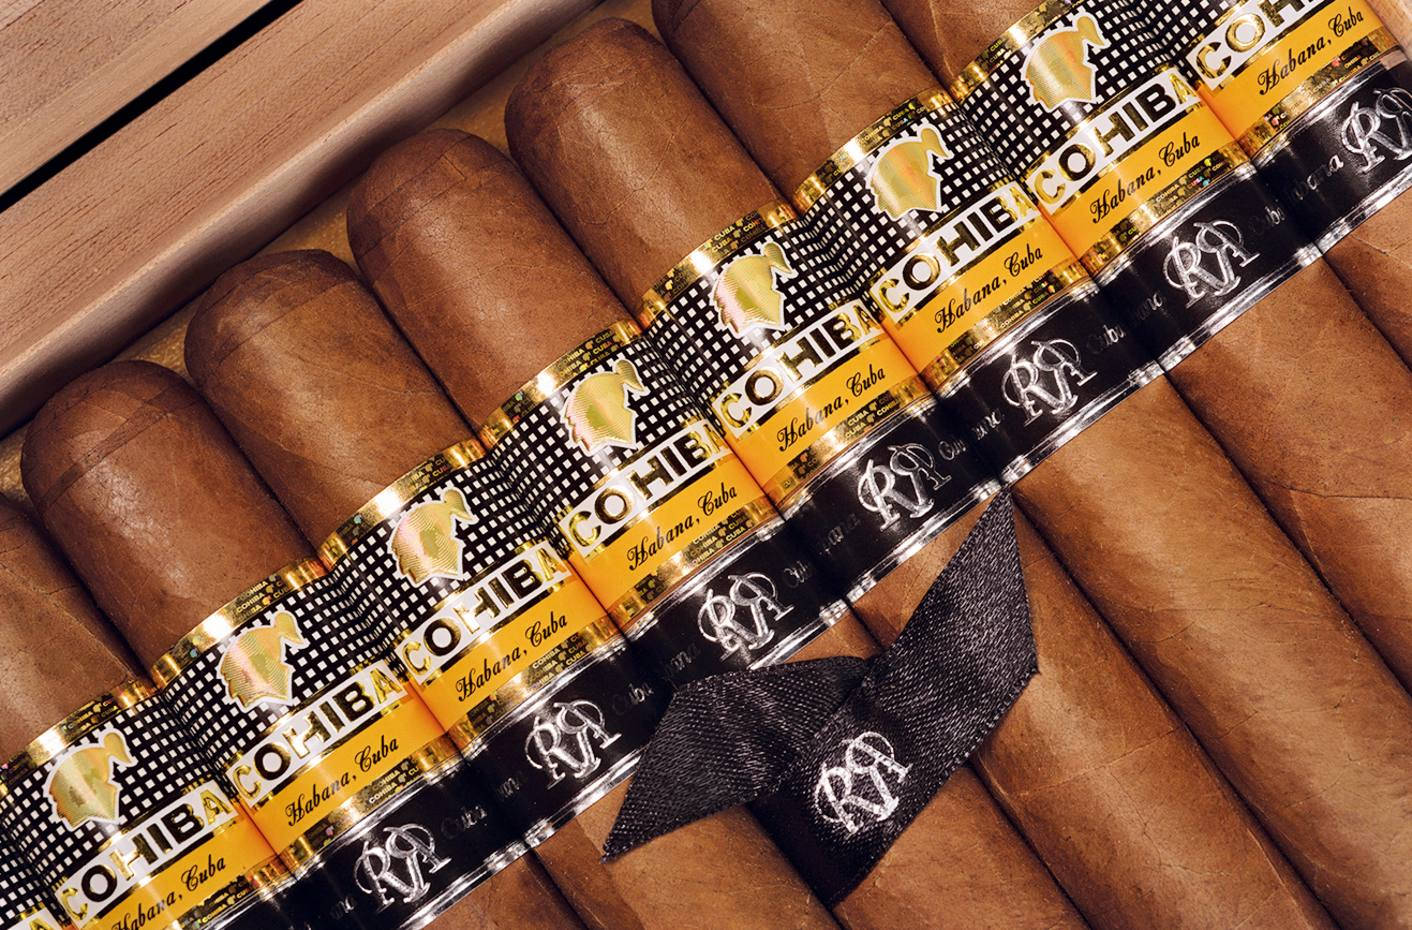 Facts About Cohiba, Cuba's Most Famous Cigar Brand